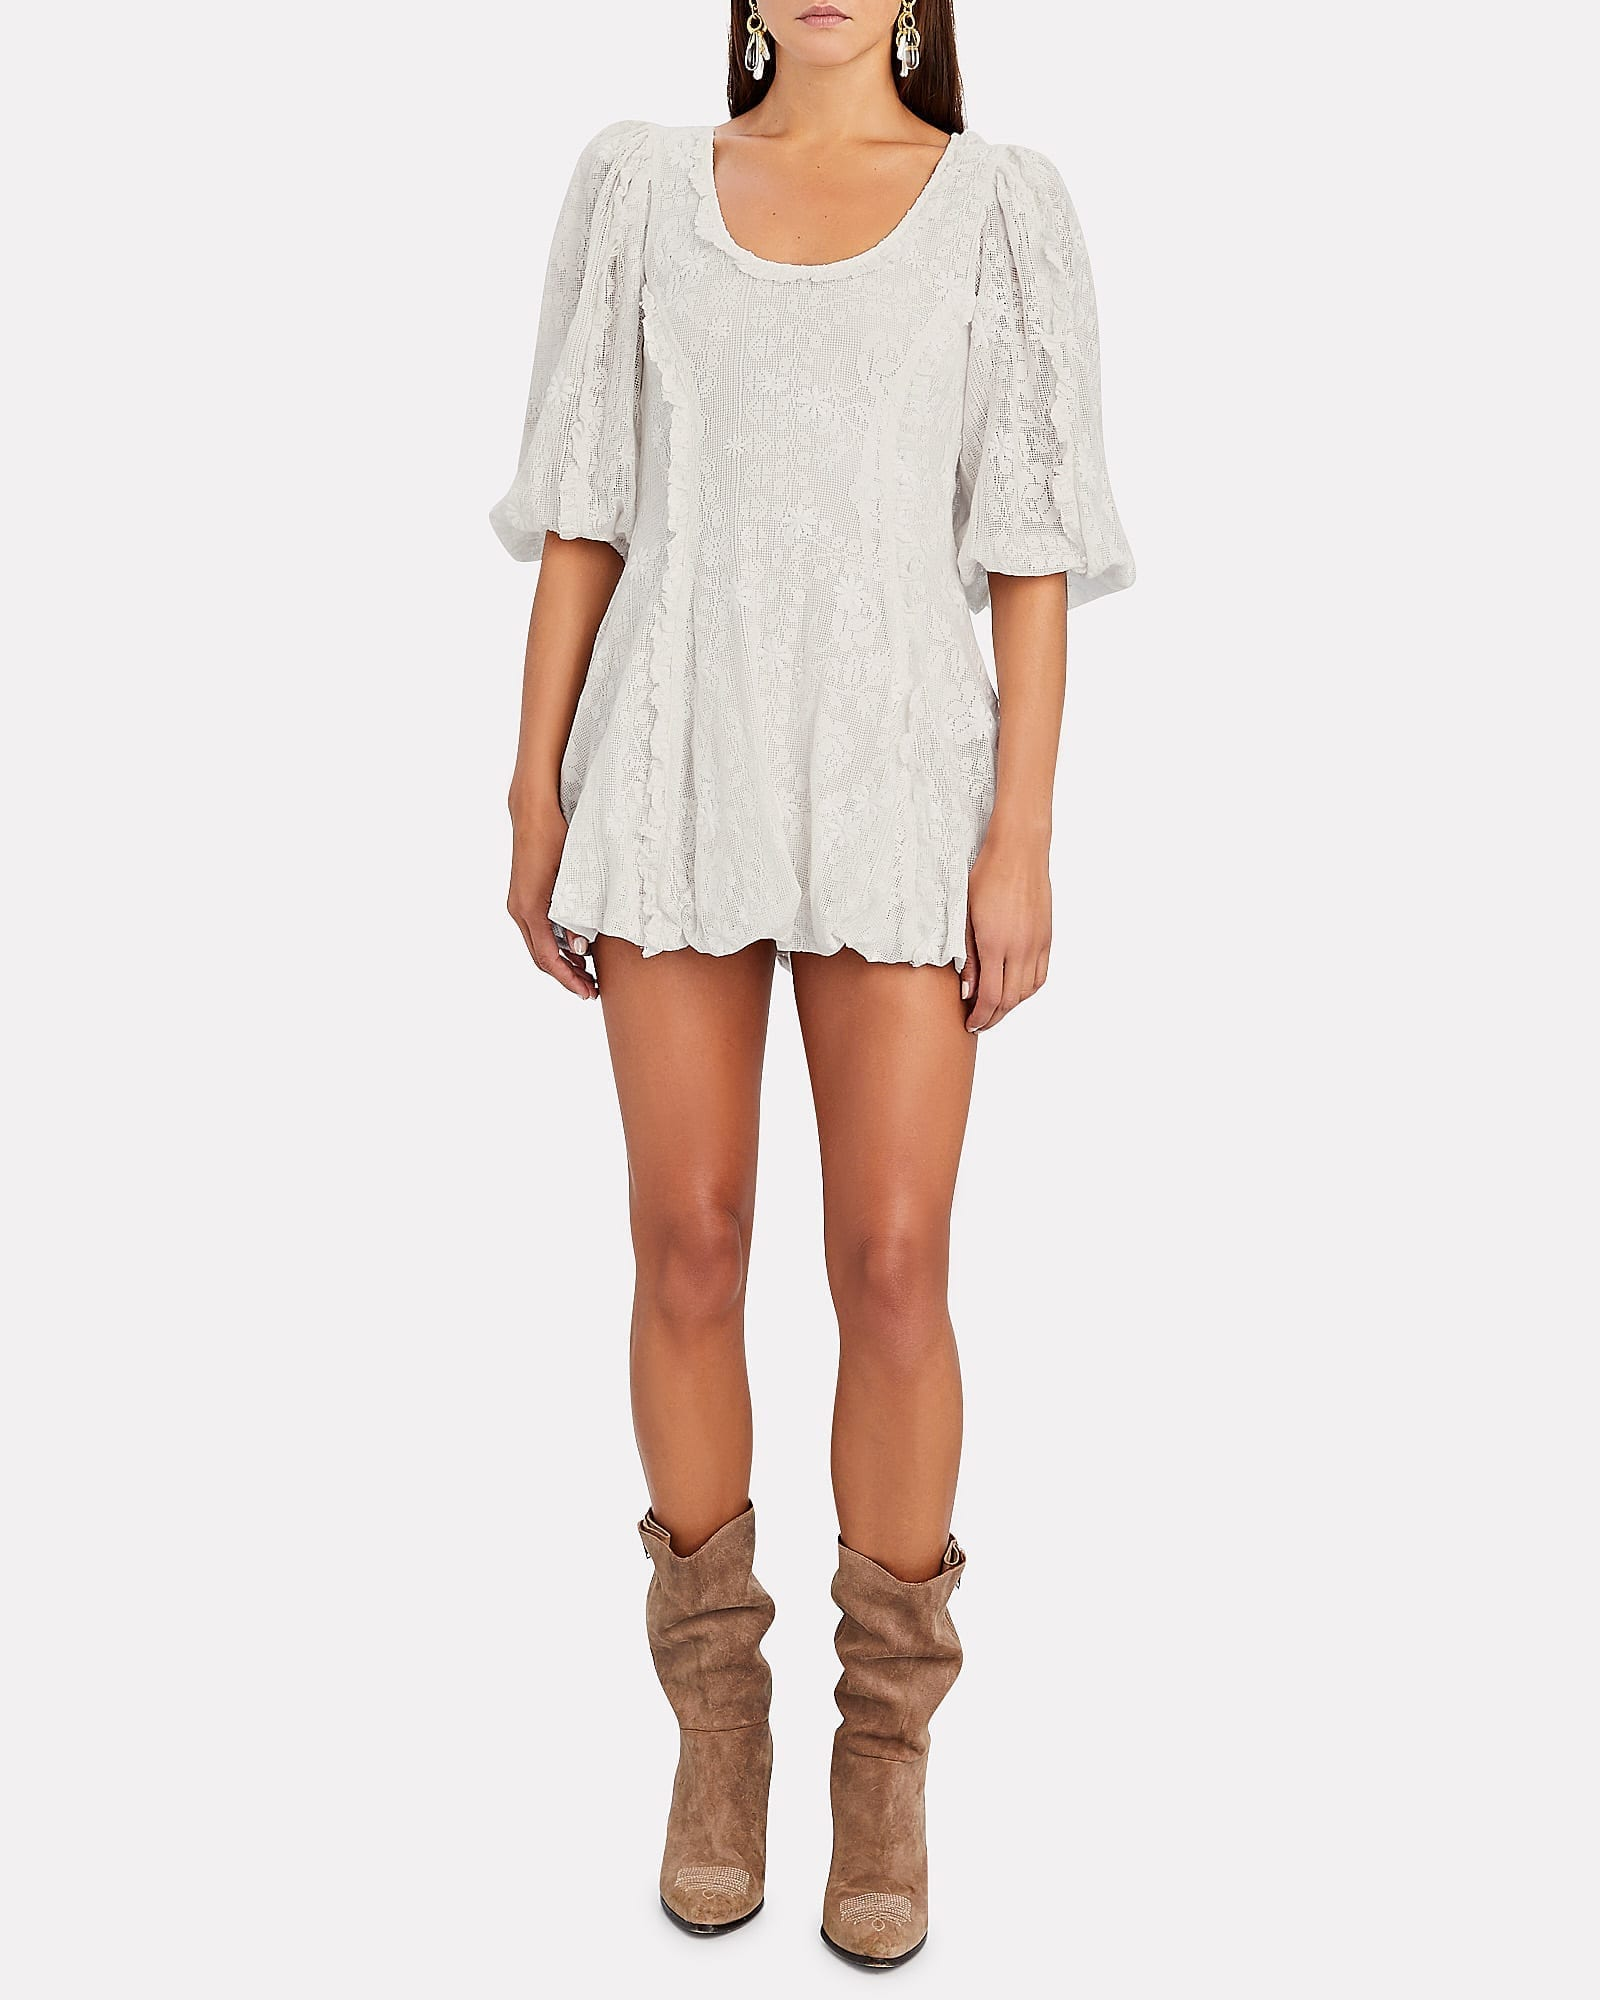 LOVESHACKFANCY Hampton Puff Sleeve MIni Dress